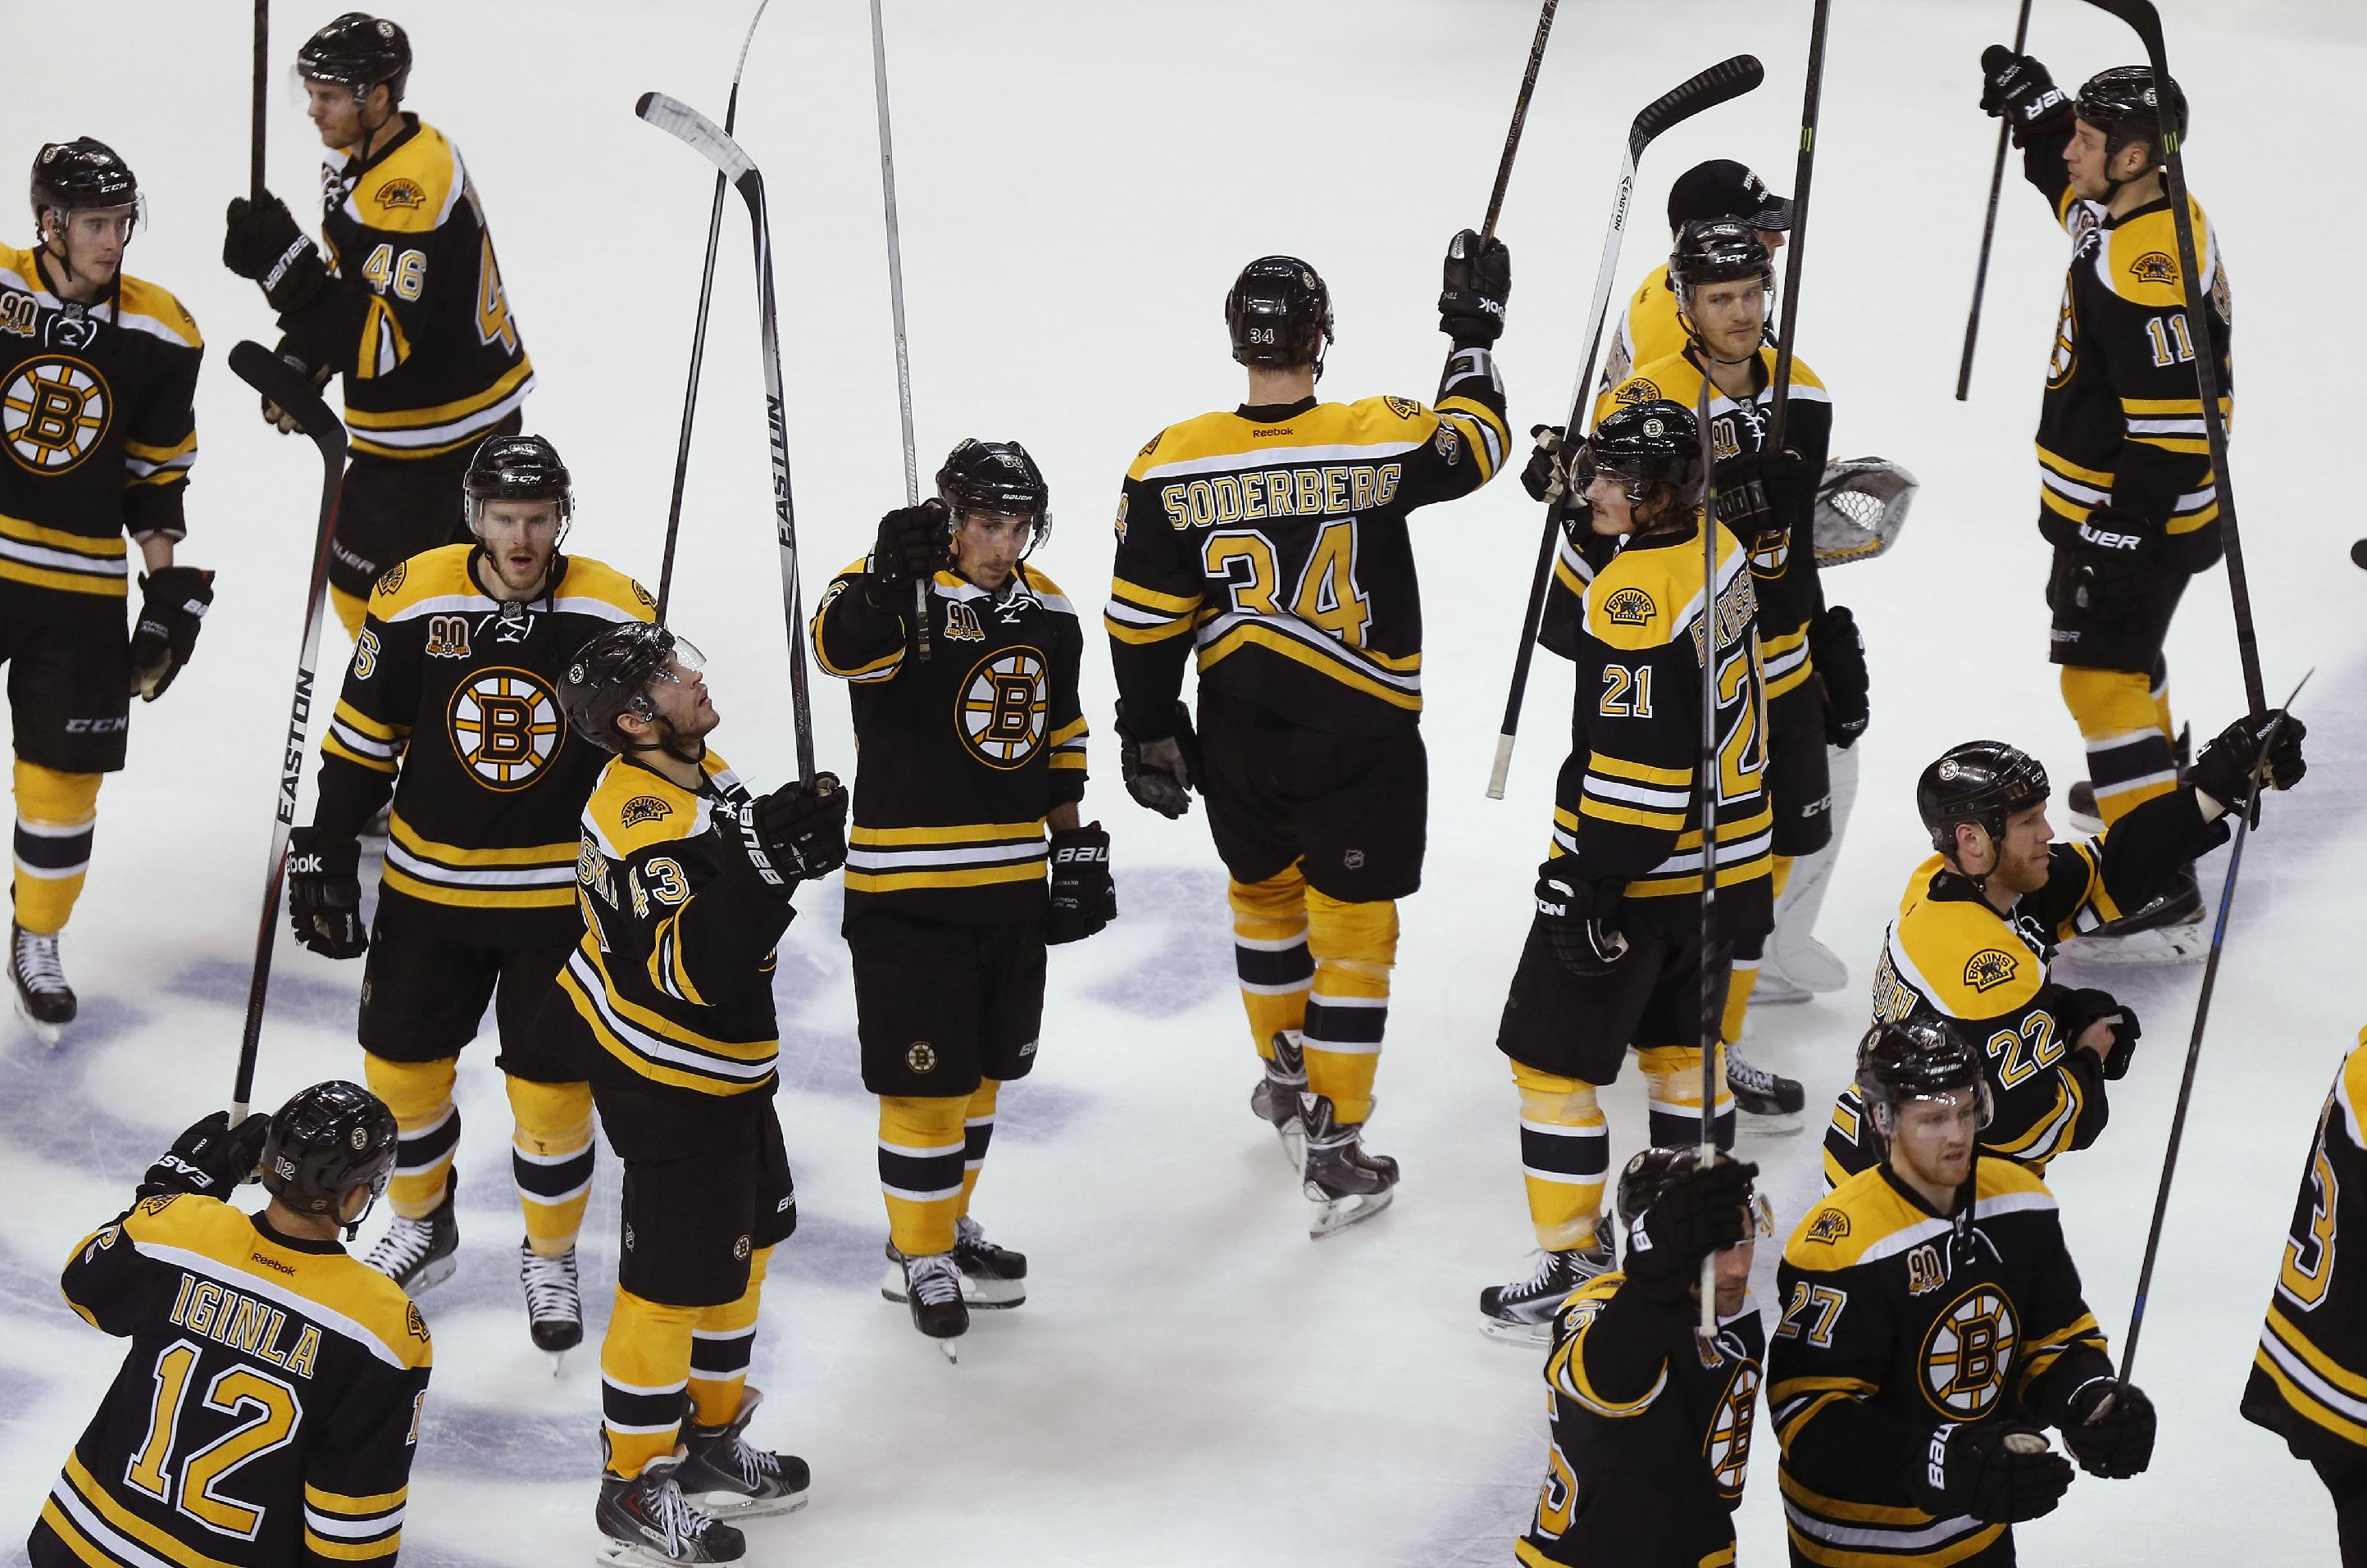 The Boston Bruins celebrate their 4-2 win against the Detroit Red Wings in Game 5 in the first round of the NHL hockey Stanley Cup playoffs  in Boston, Saturday, April 26, 2014. The win eliminated the Red Wings from the postseason